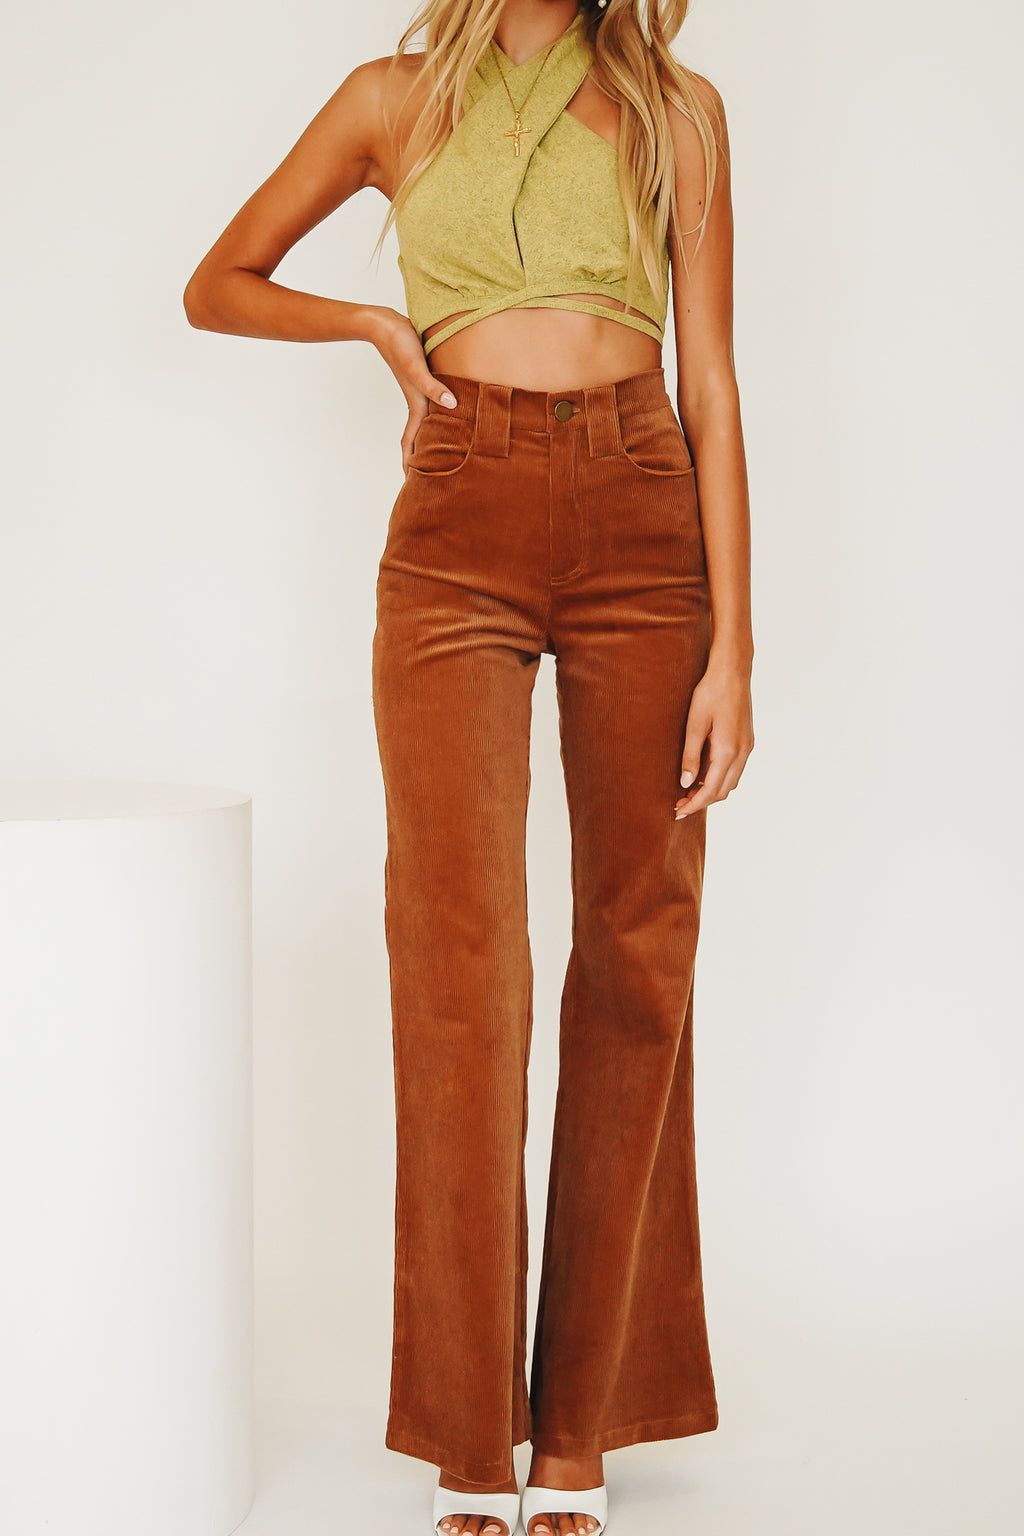 VRG GRL Face Of Being Cord Pants // Tan